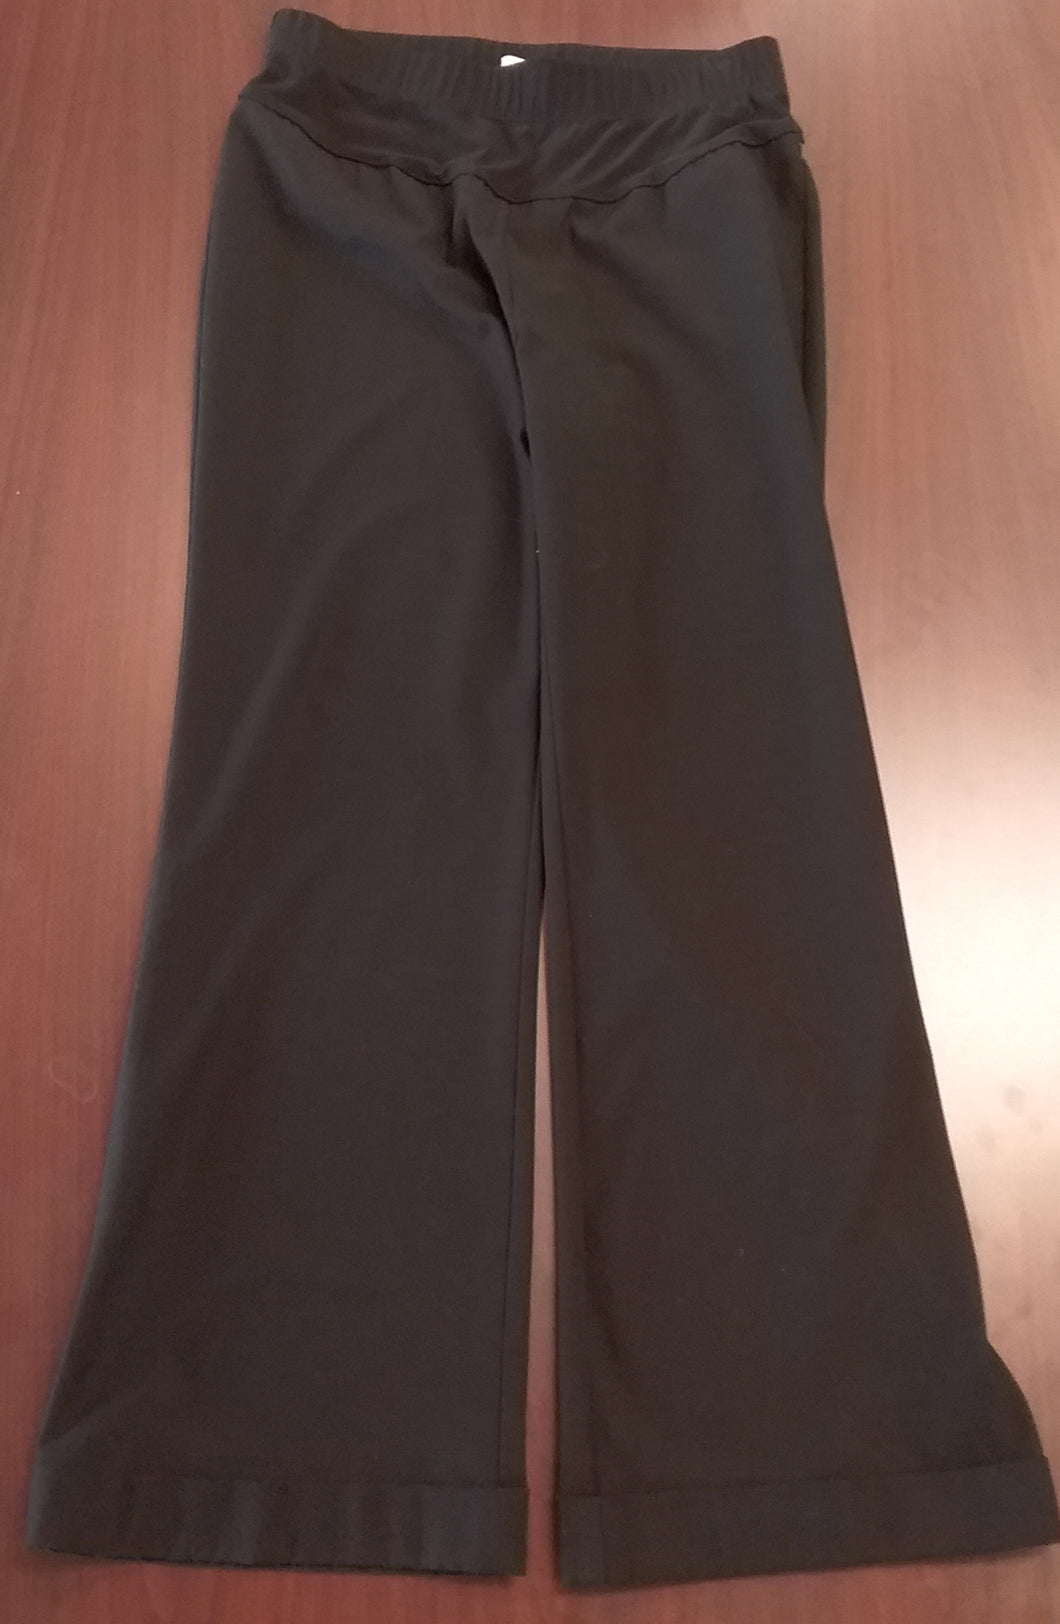 Medium Stretch Under Belly Panel Black Maternity Pants